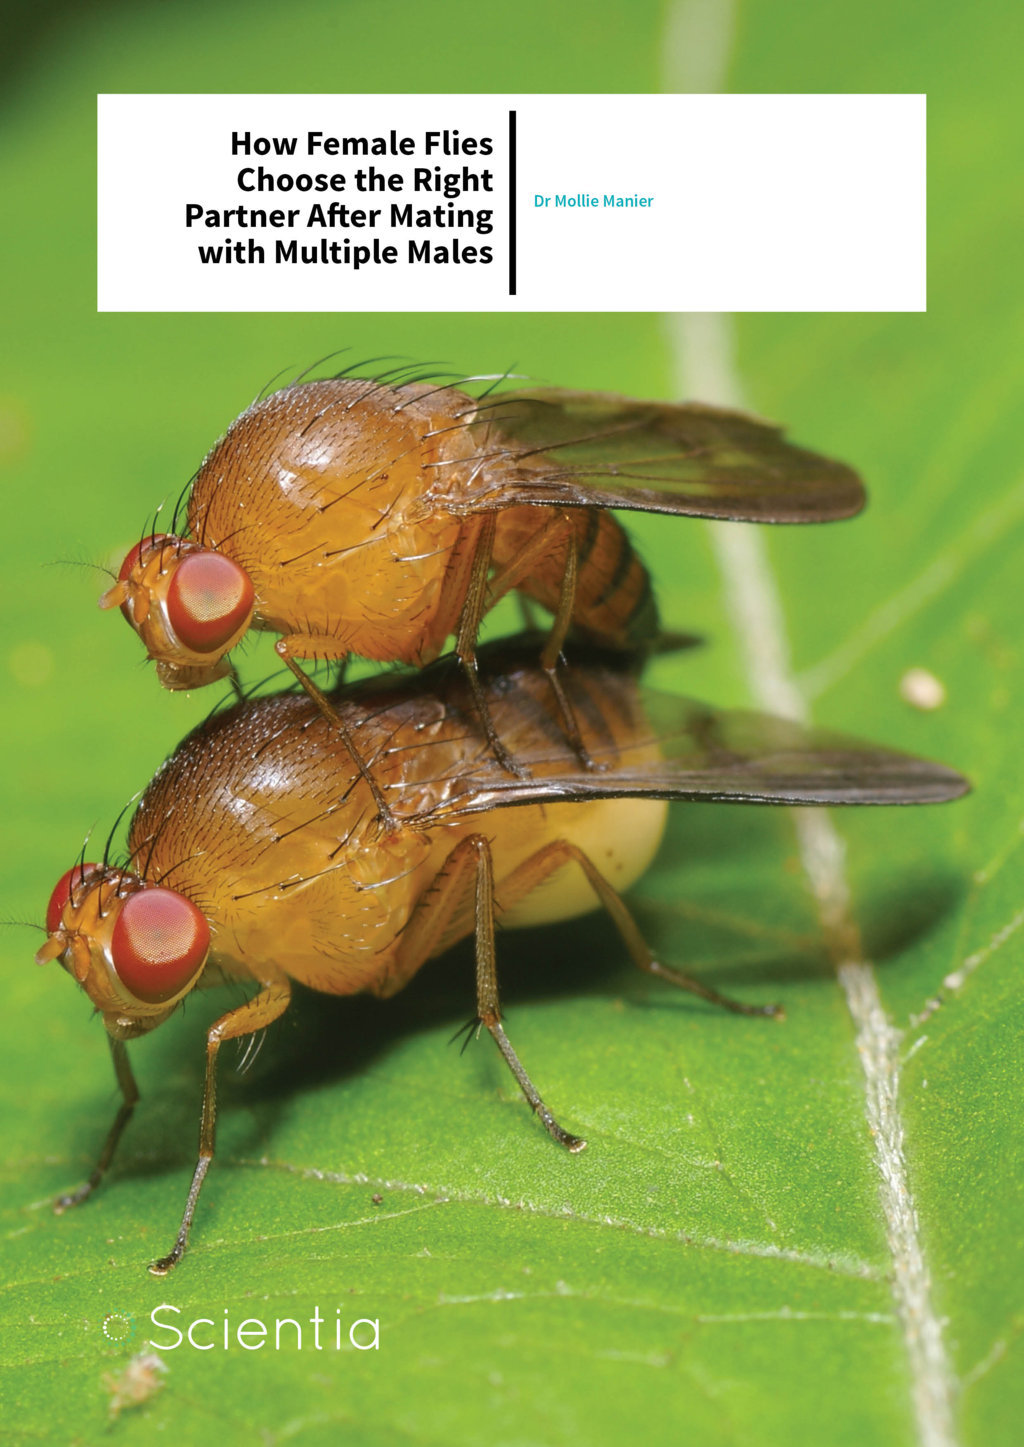 Dr Mollie Manier – How Female Flies Choose The Right Partner After Mating With Multiple Males